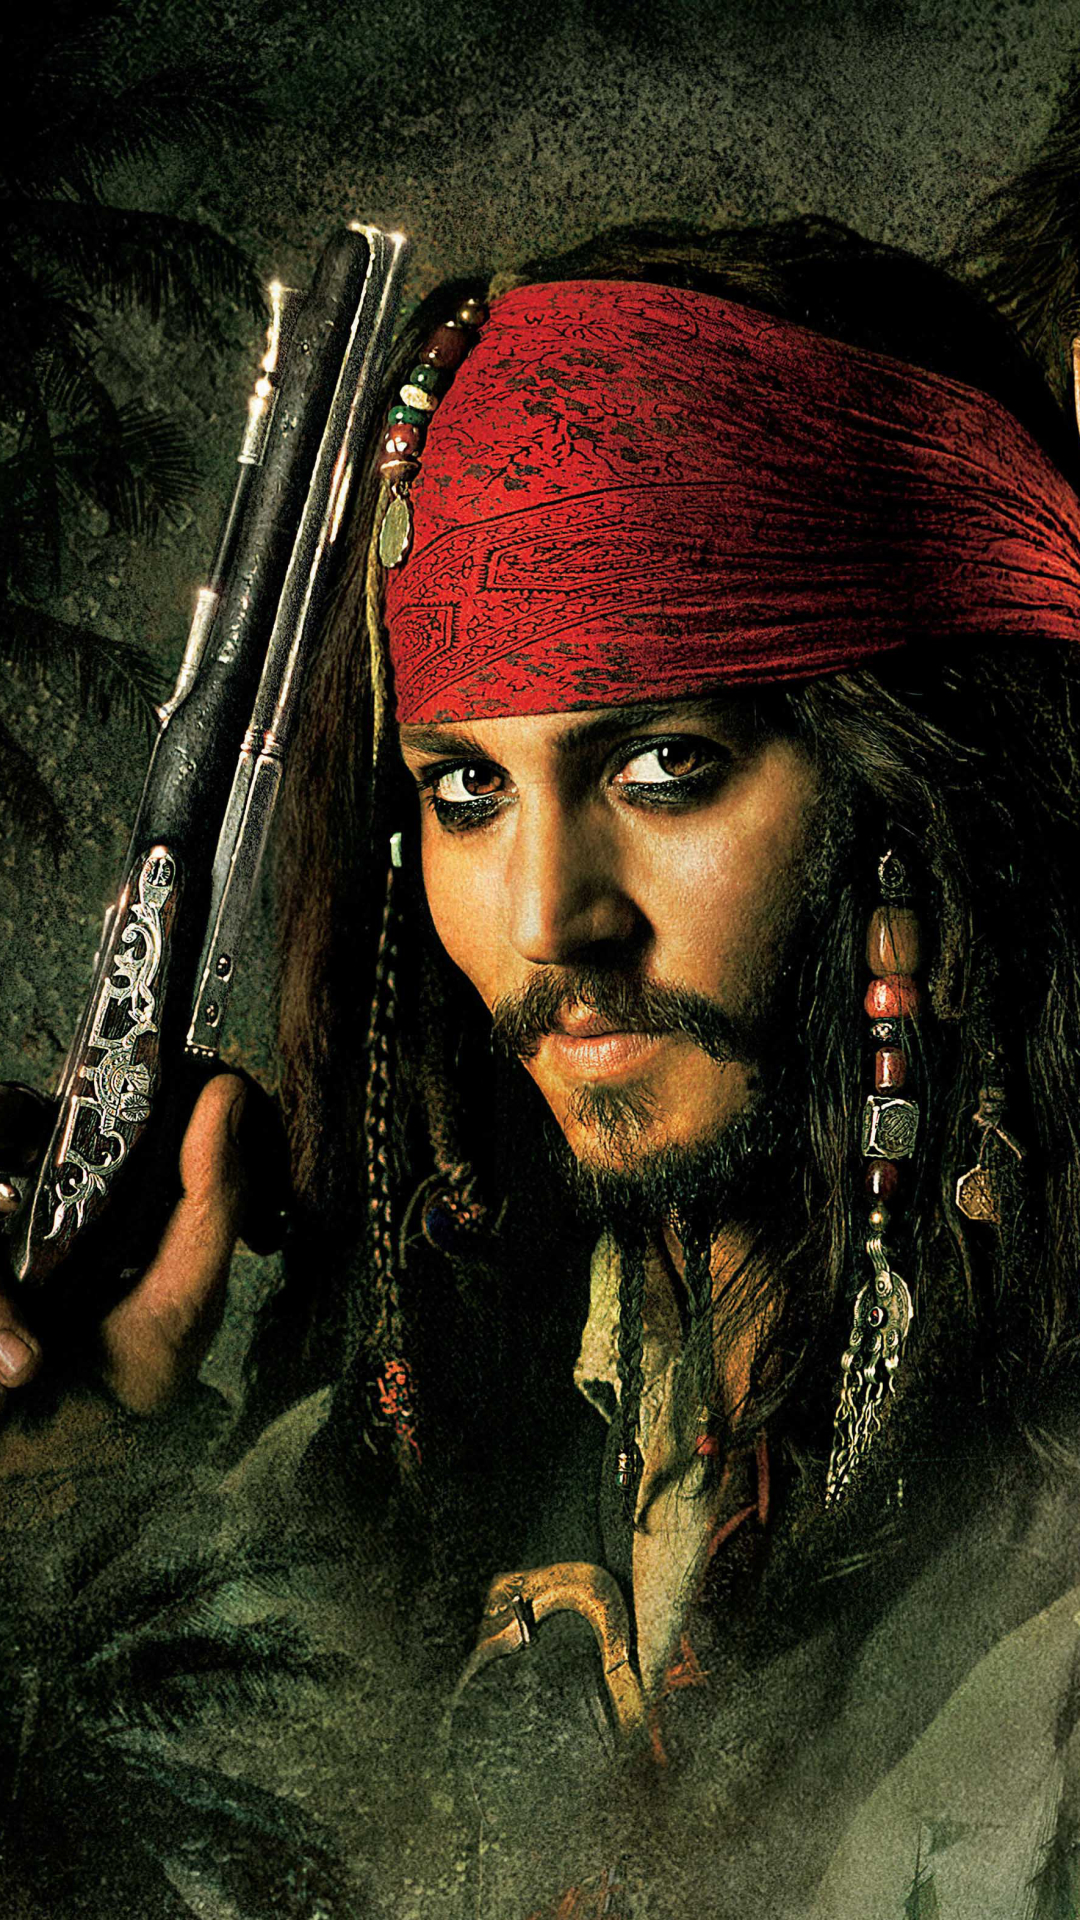 Movie pirates of the caribbean dead man 39 s chest - Pirates of the caribbean wallpaper ...